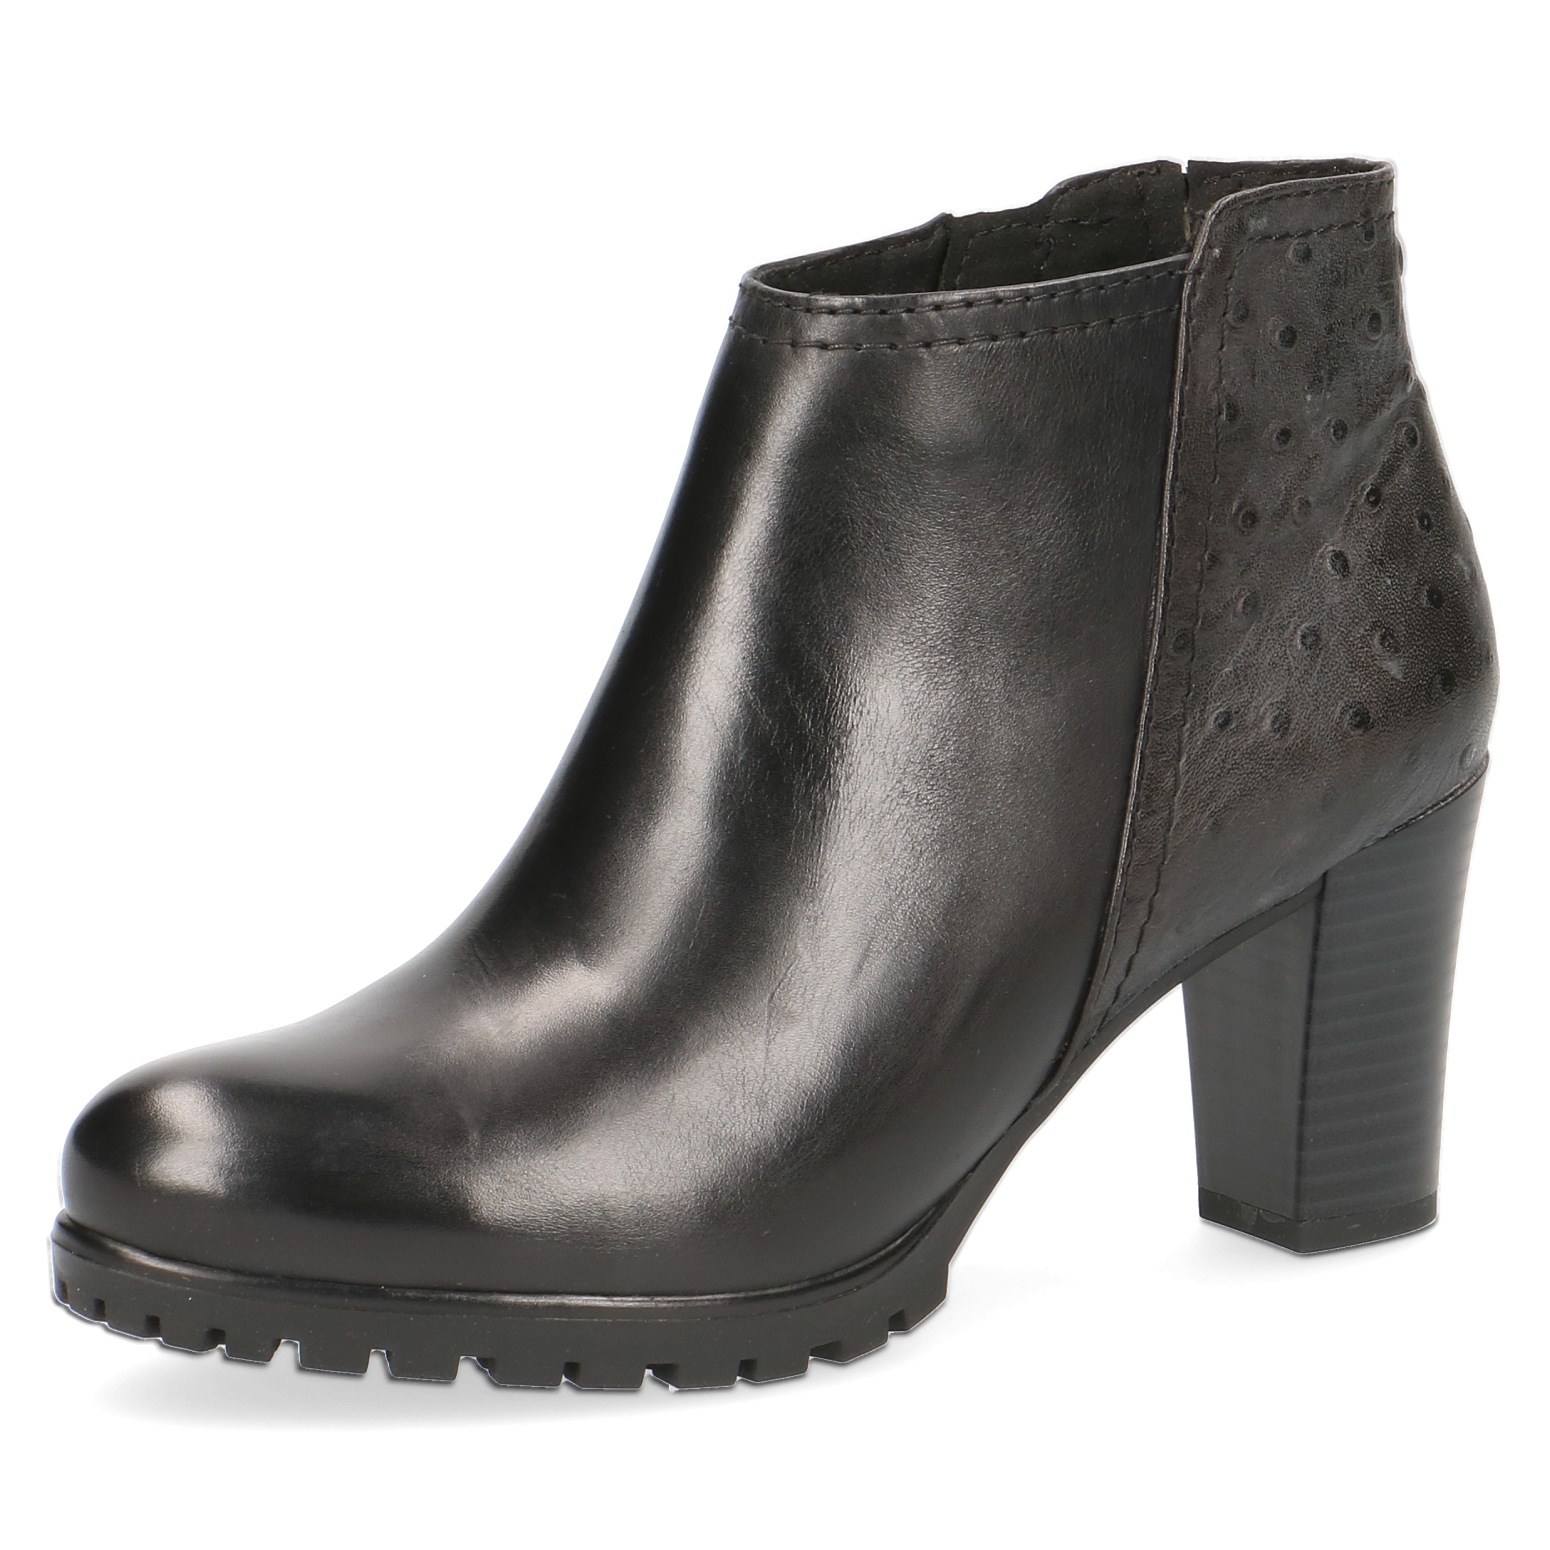 Caprice Louisa Black Leather Ankle Boot